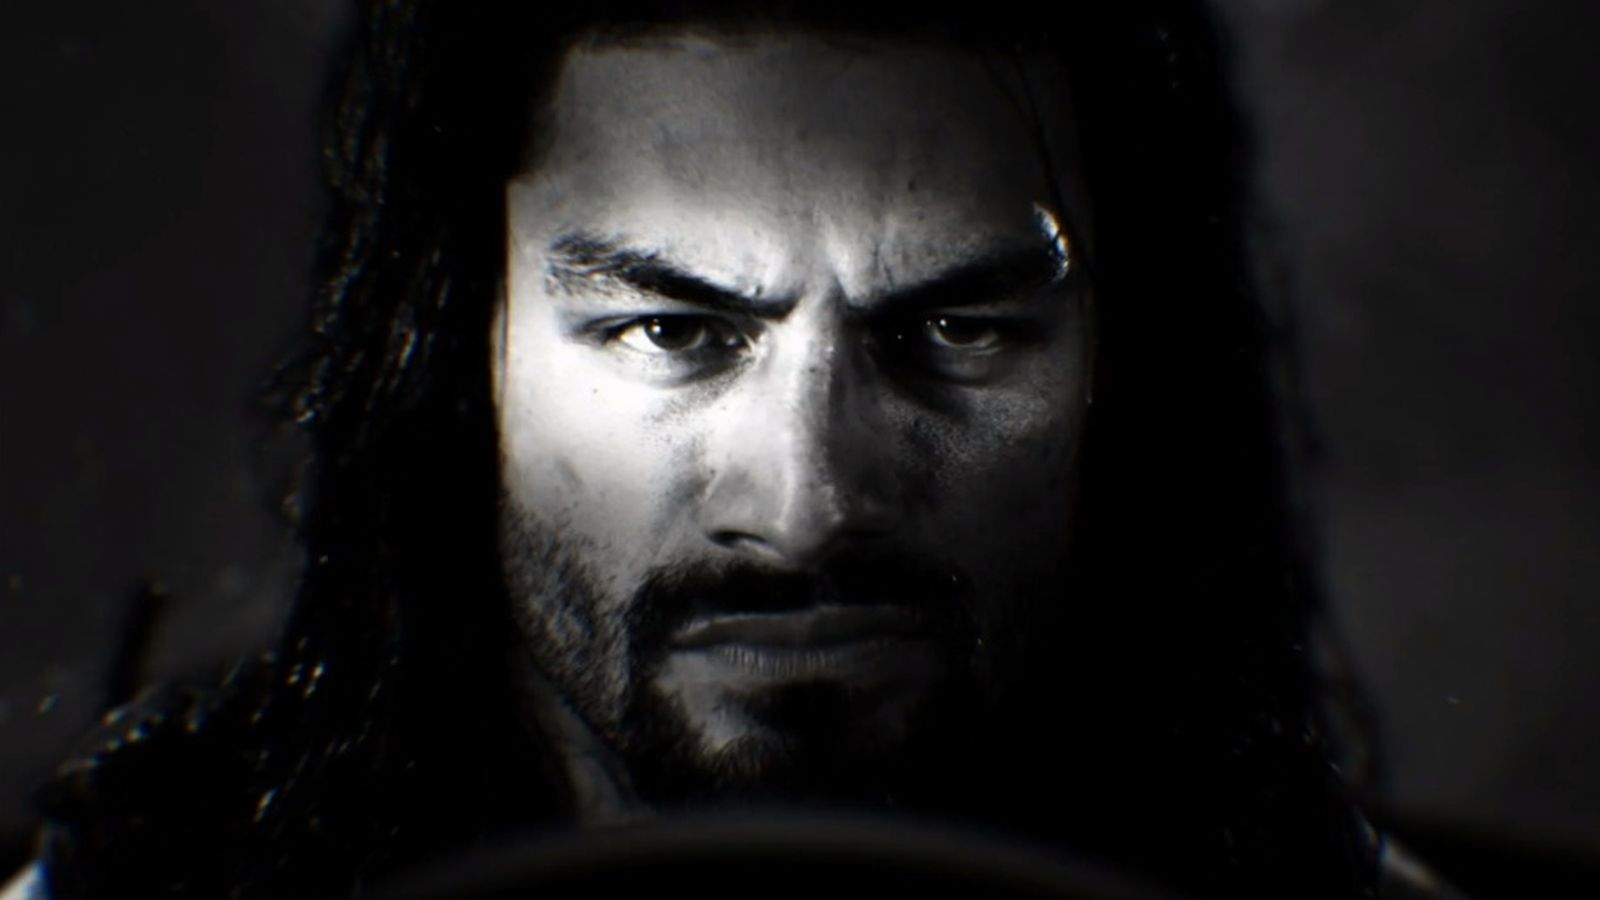 Roman Reigns HD Wallpapers Nice Collection Of WWE Download